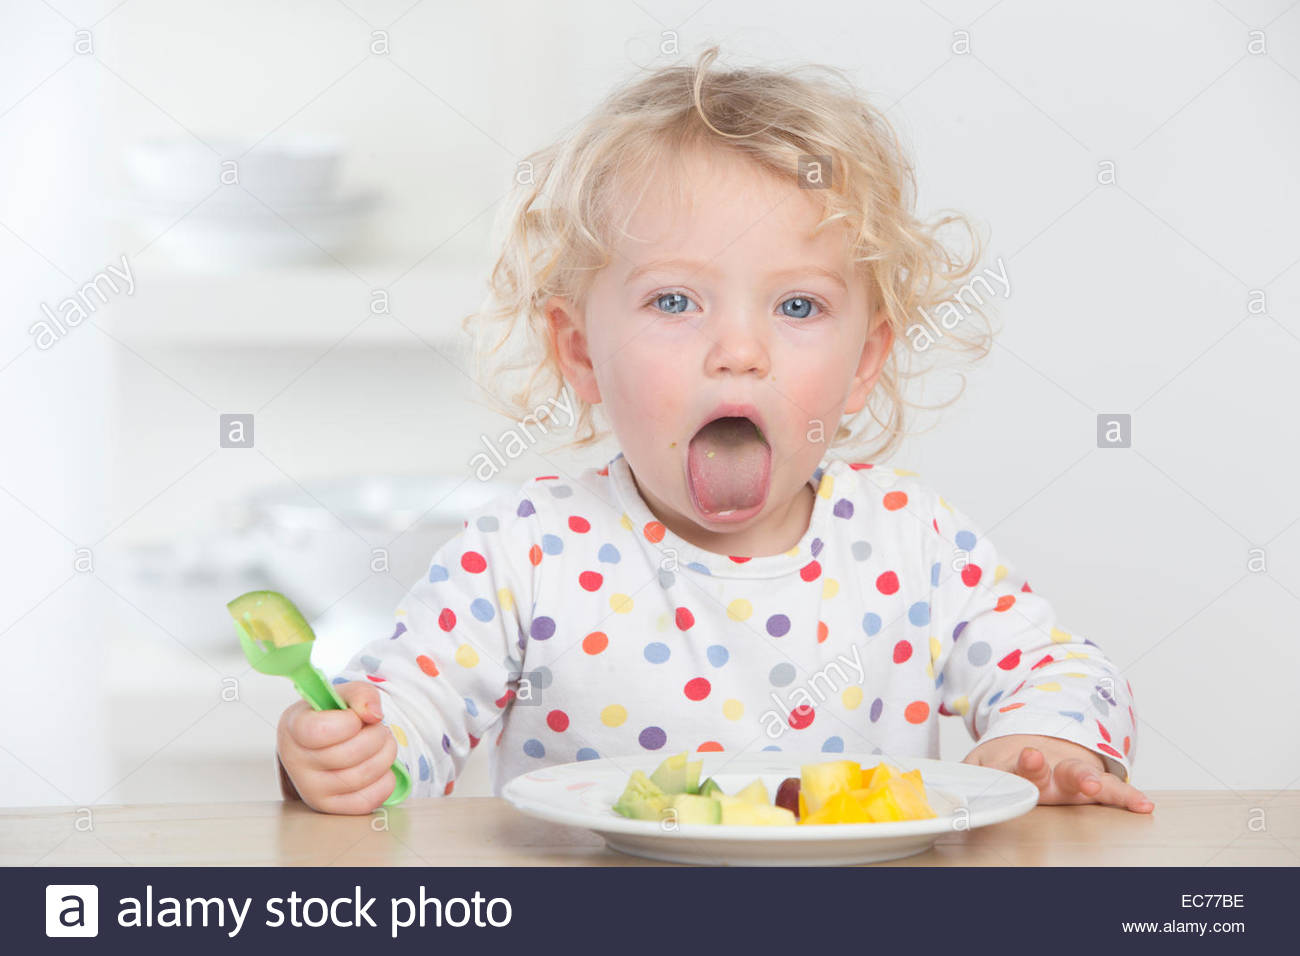 Baby eating fruit making a face - Stock Image